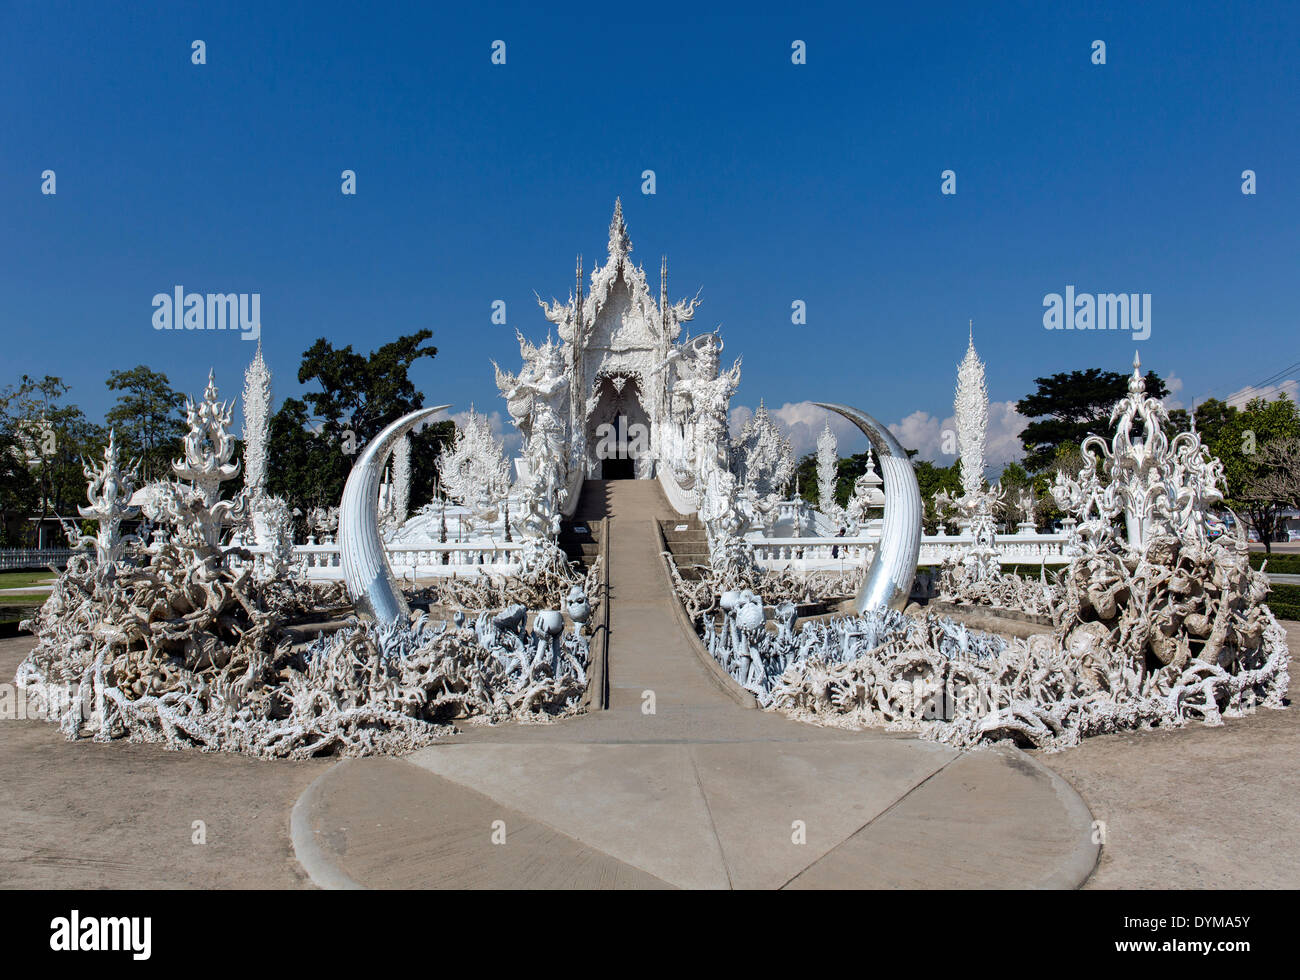 L'inscription de l'enfer, suppliant les mains sur l'escalier à l'entrée du Wat Rong Khun, Temple blanc, par l'architecte Chalermchai Photo Stock